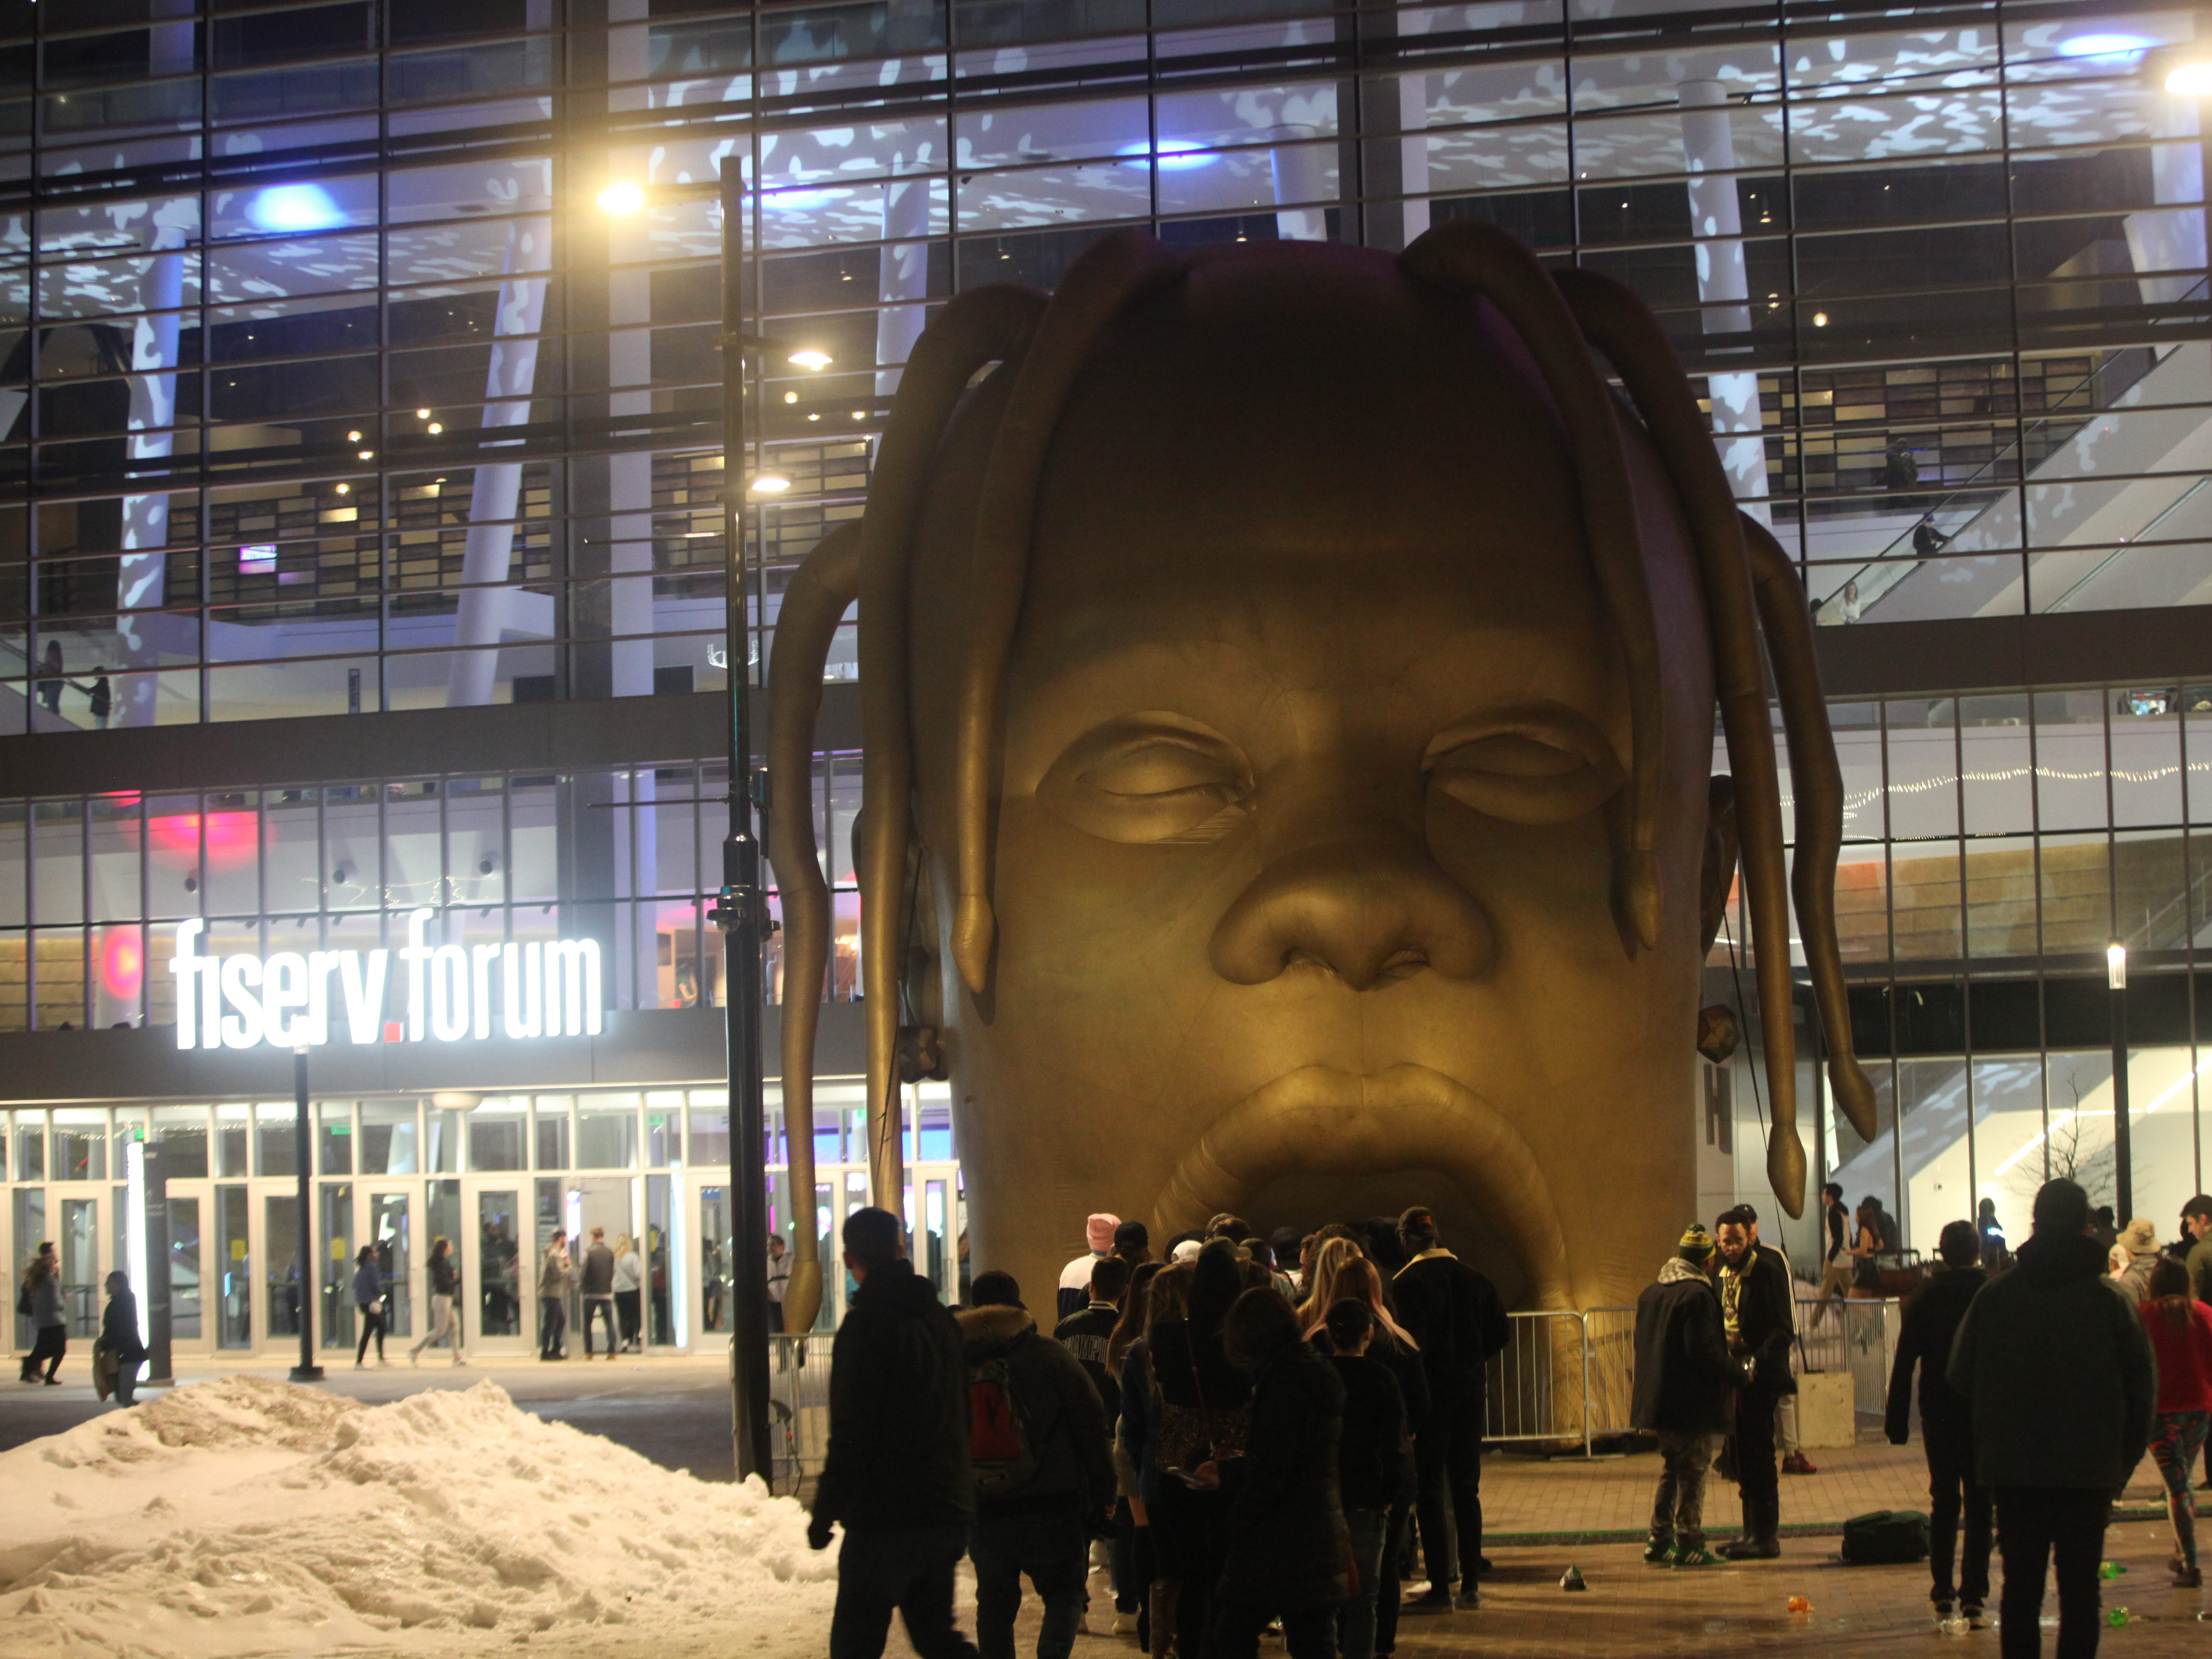 "Fans lined up to take pictures in front of an inflatable Travis Scott head, as seen in the album art for his latest album ""Astroworld,"" before the rapper's show at Fiserv Forum on Feb. 22, 2019."